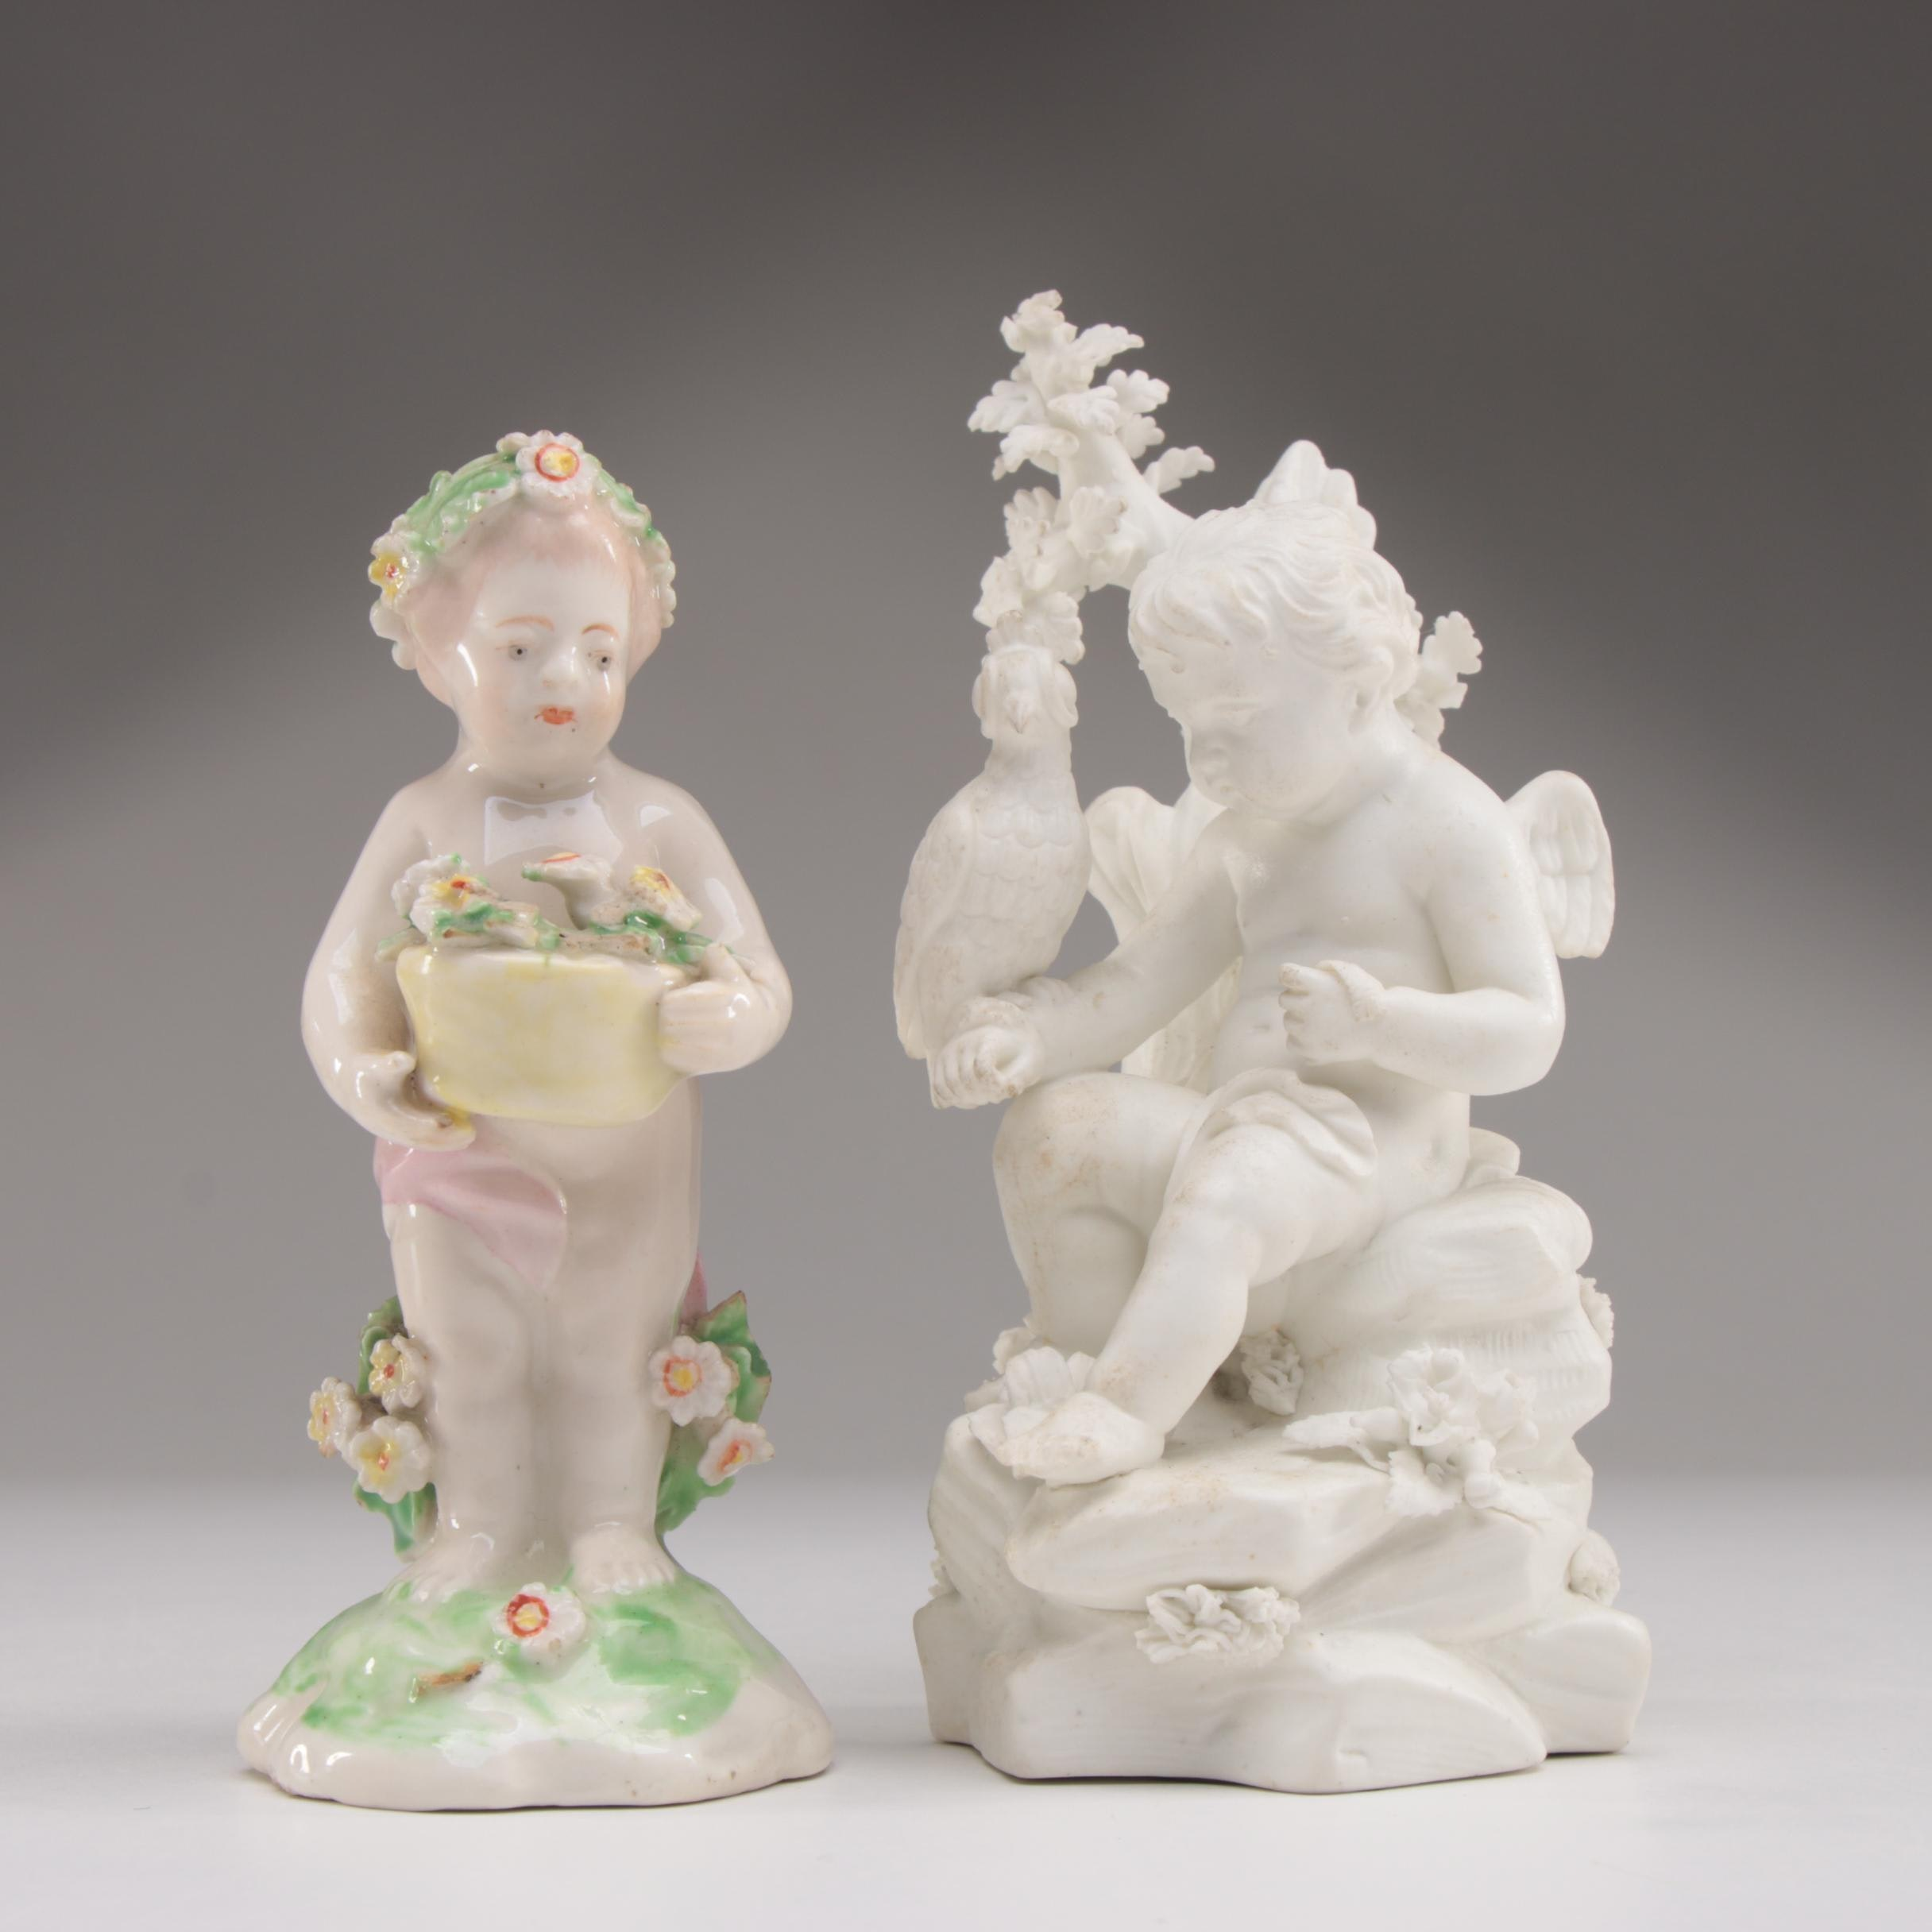 Derby Bisque Figure with Derby Porcelain Figure, Antique